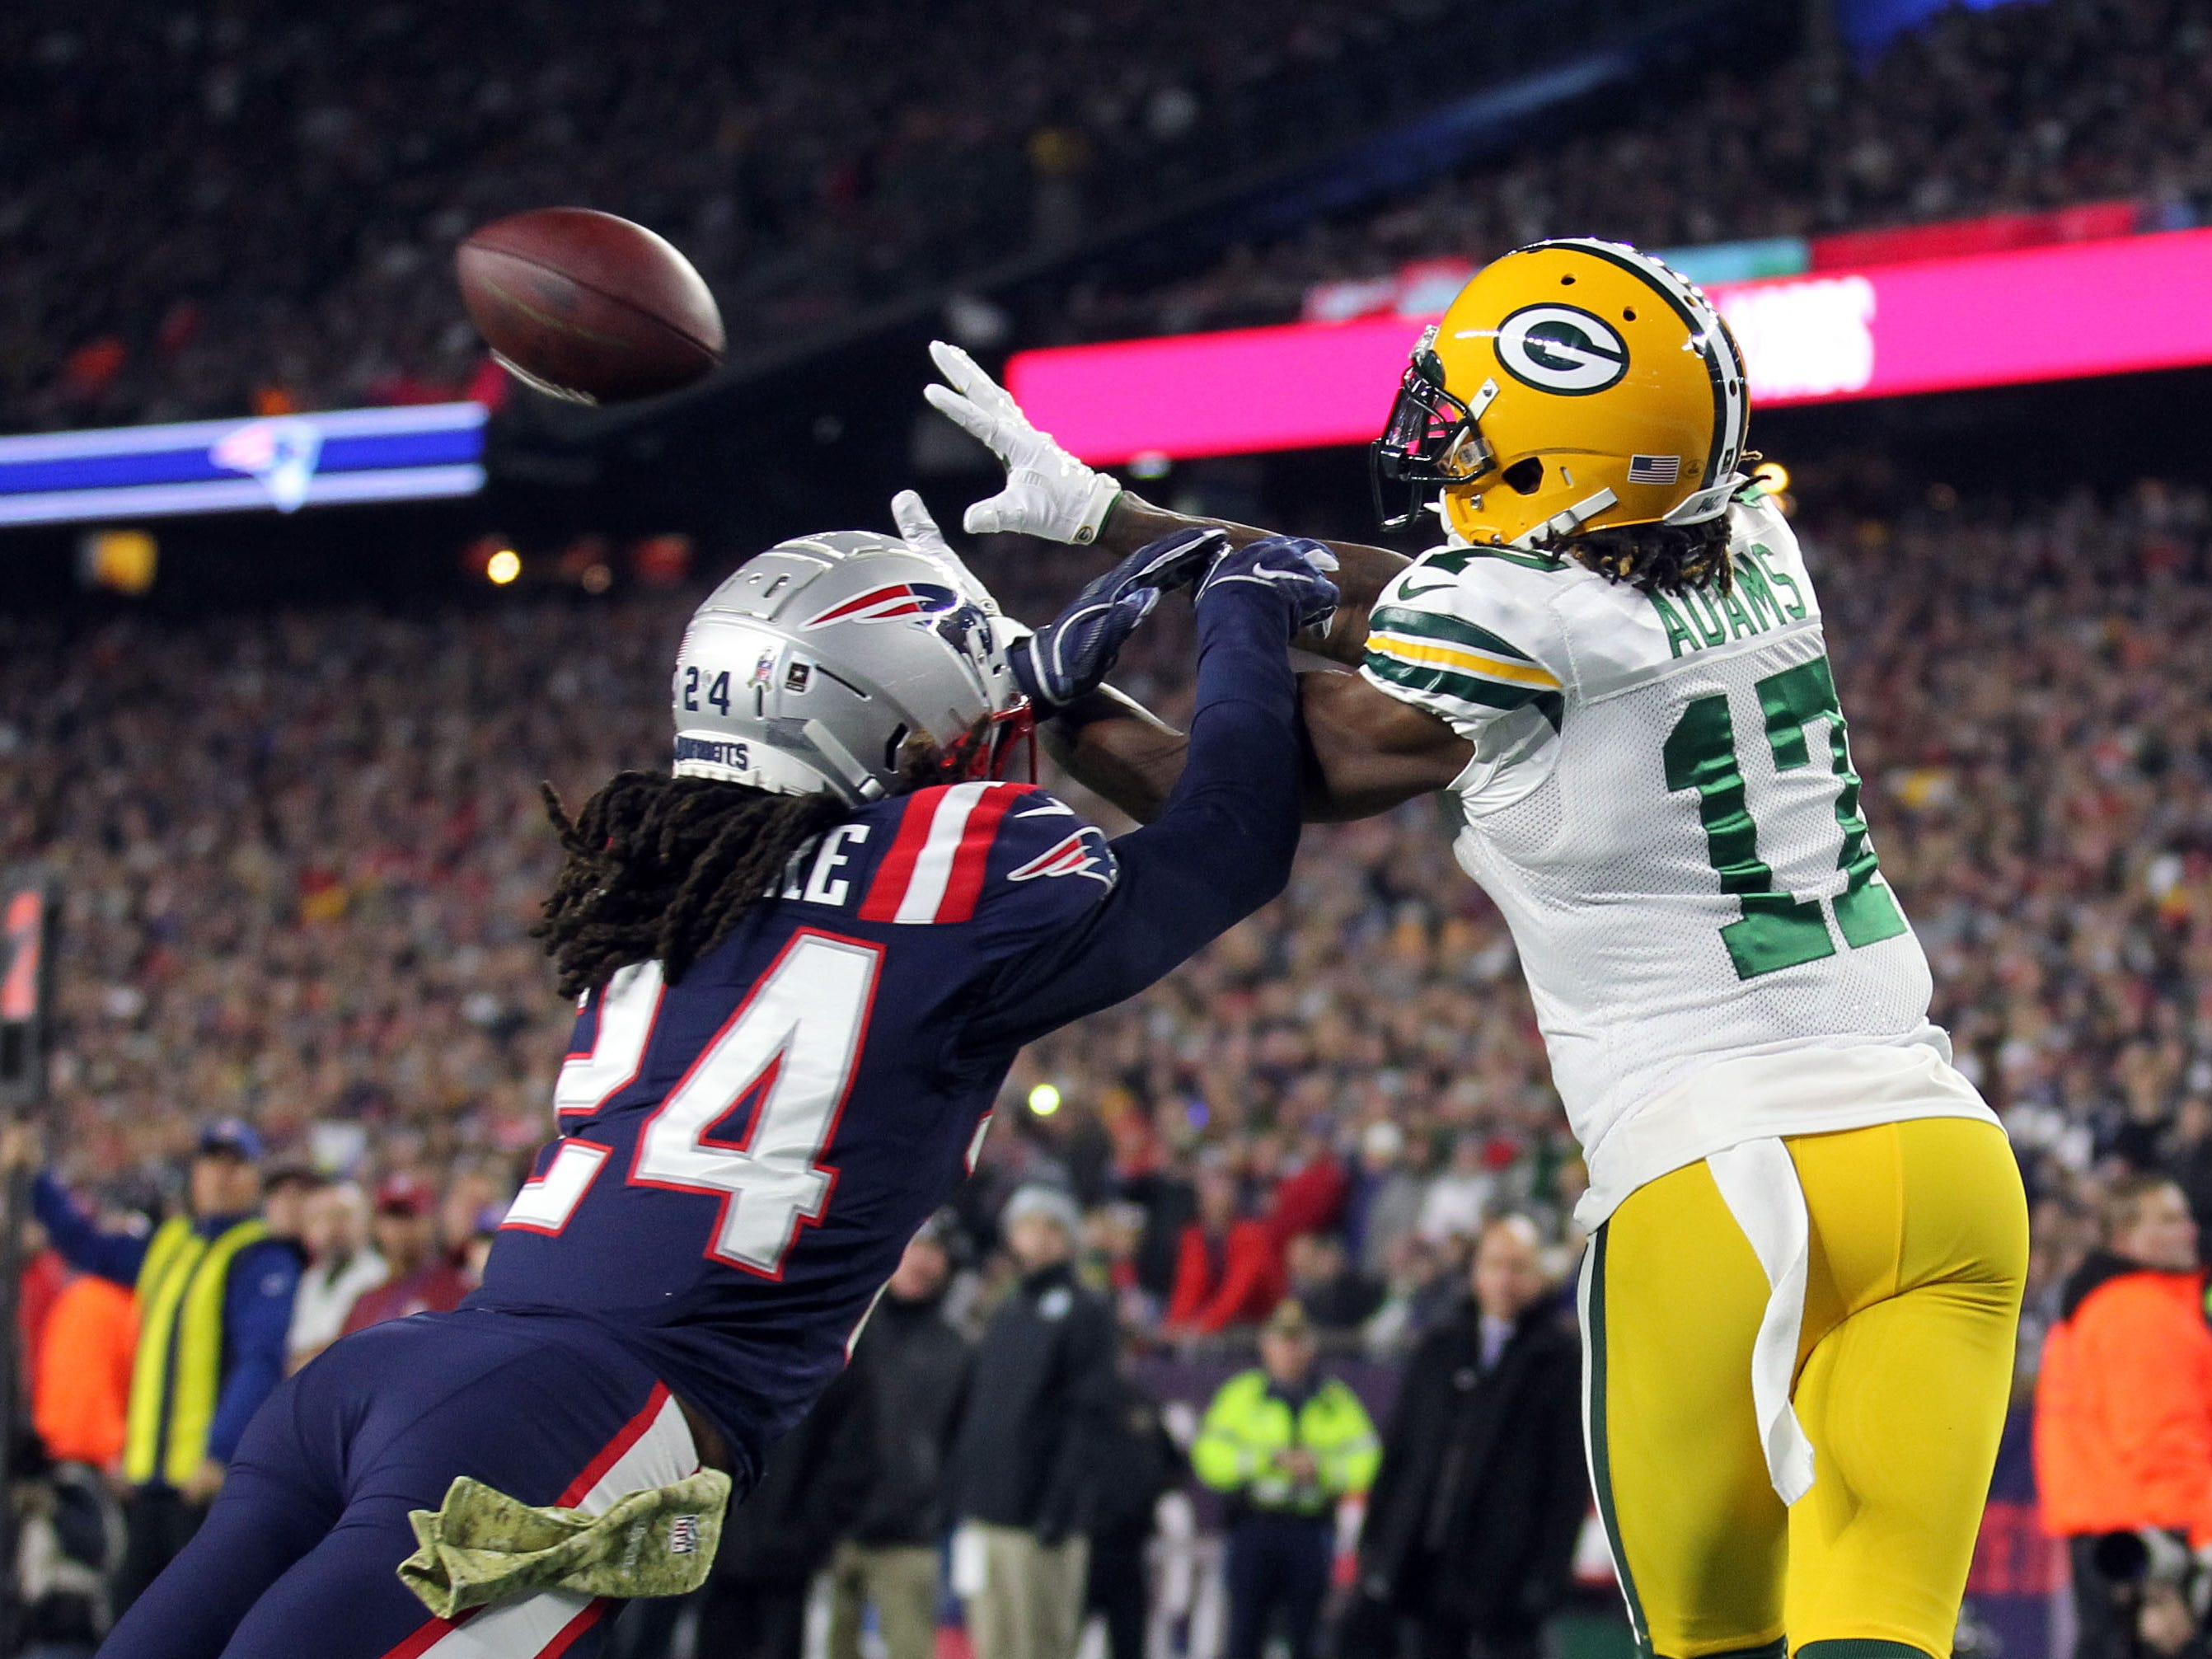 New England Patriots cornerback Stephon Gilmore breaks up a pass to Green Bay Packers wide receiver Davante Adams during the first quarter at Gillette Stadium.